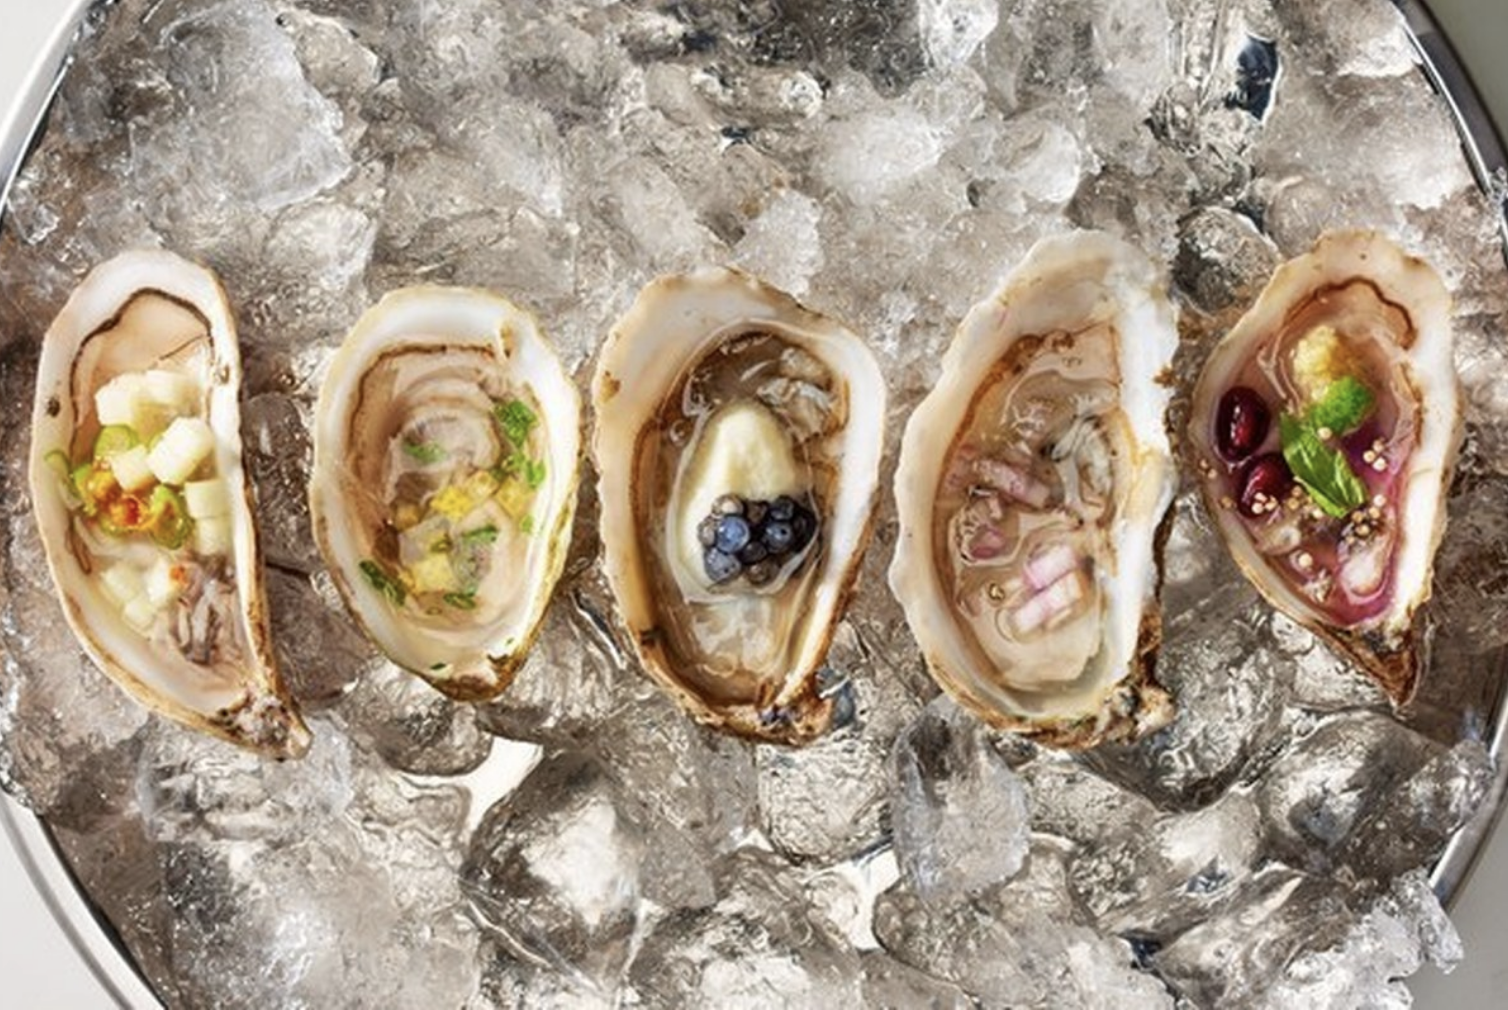 <b>7X7 BAY AREA</b> The Best Spots to Slurp Oysters in San Francisco (From Cheap to Luxe)